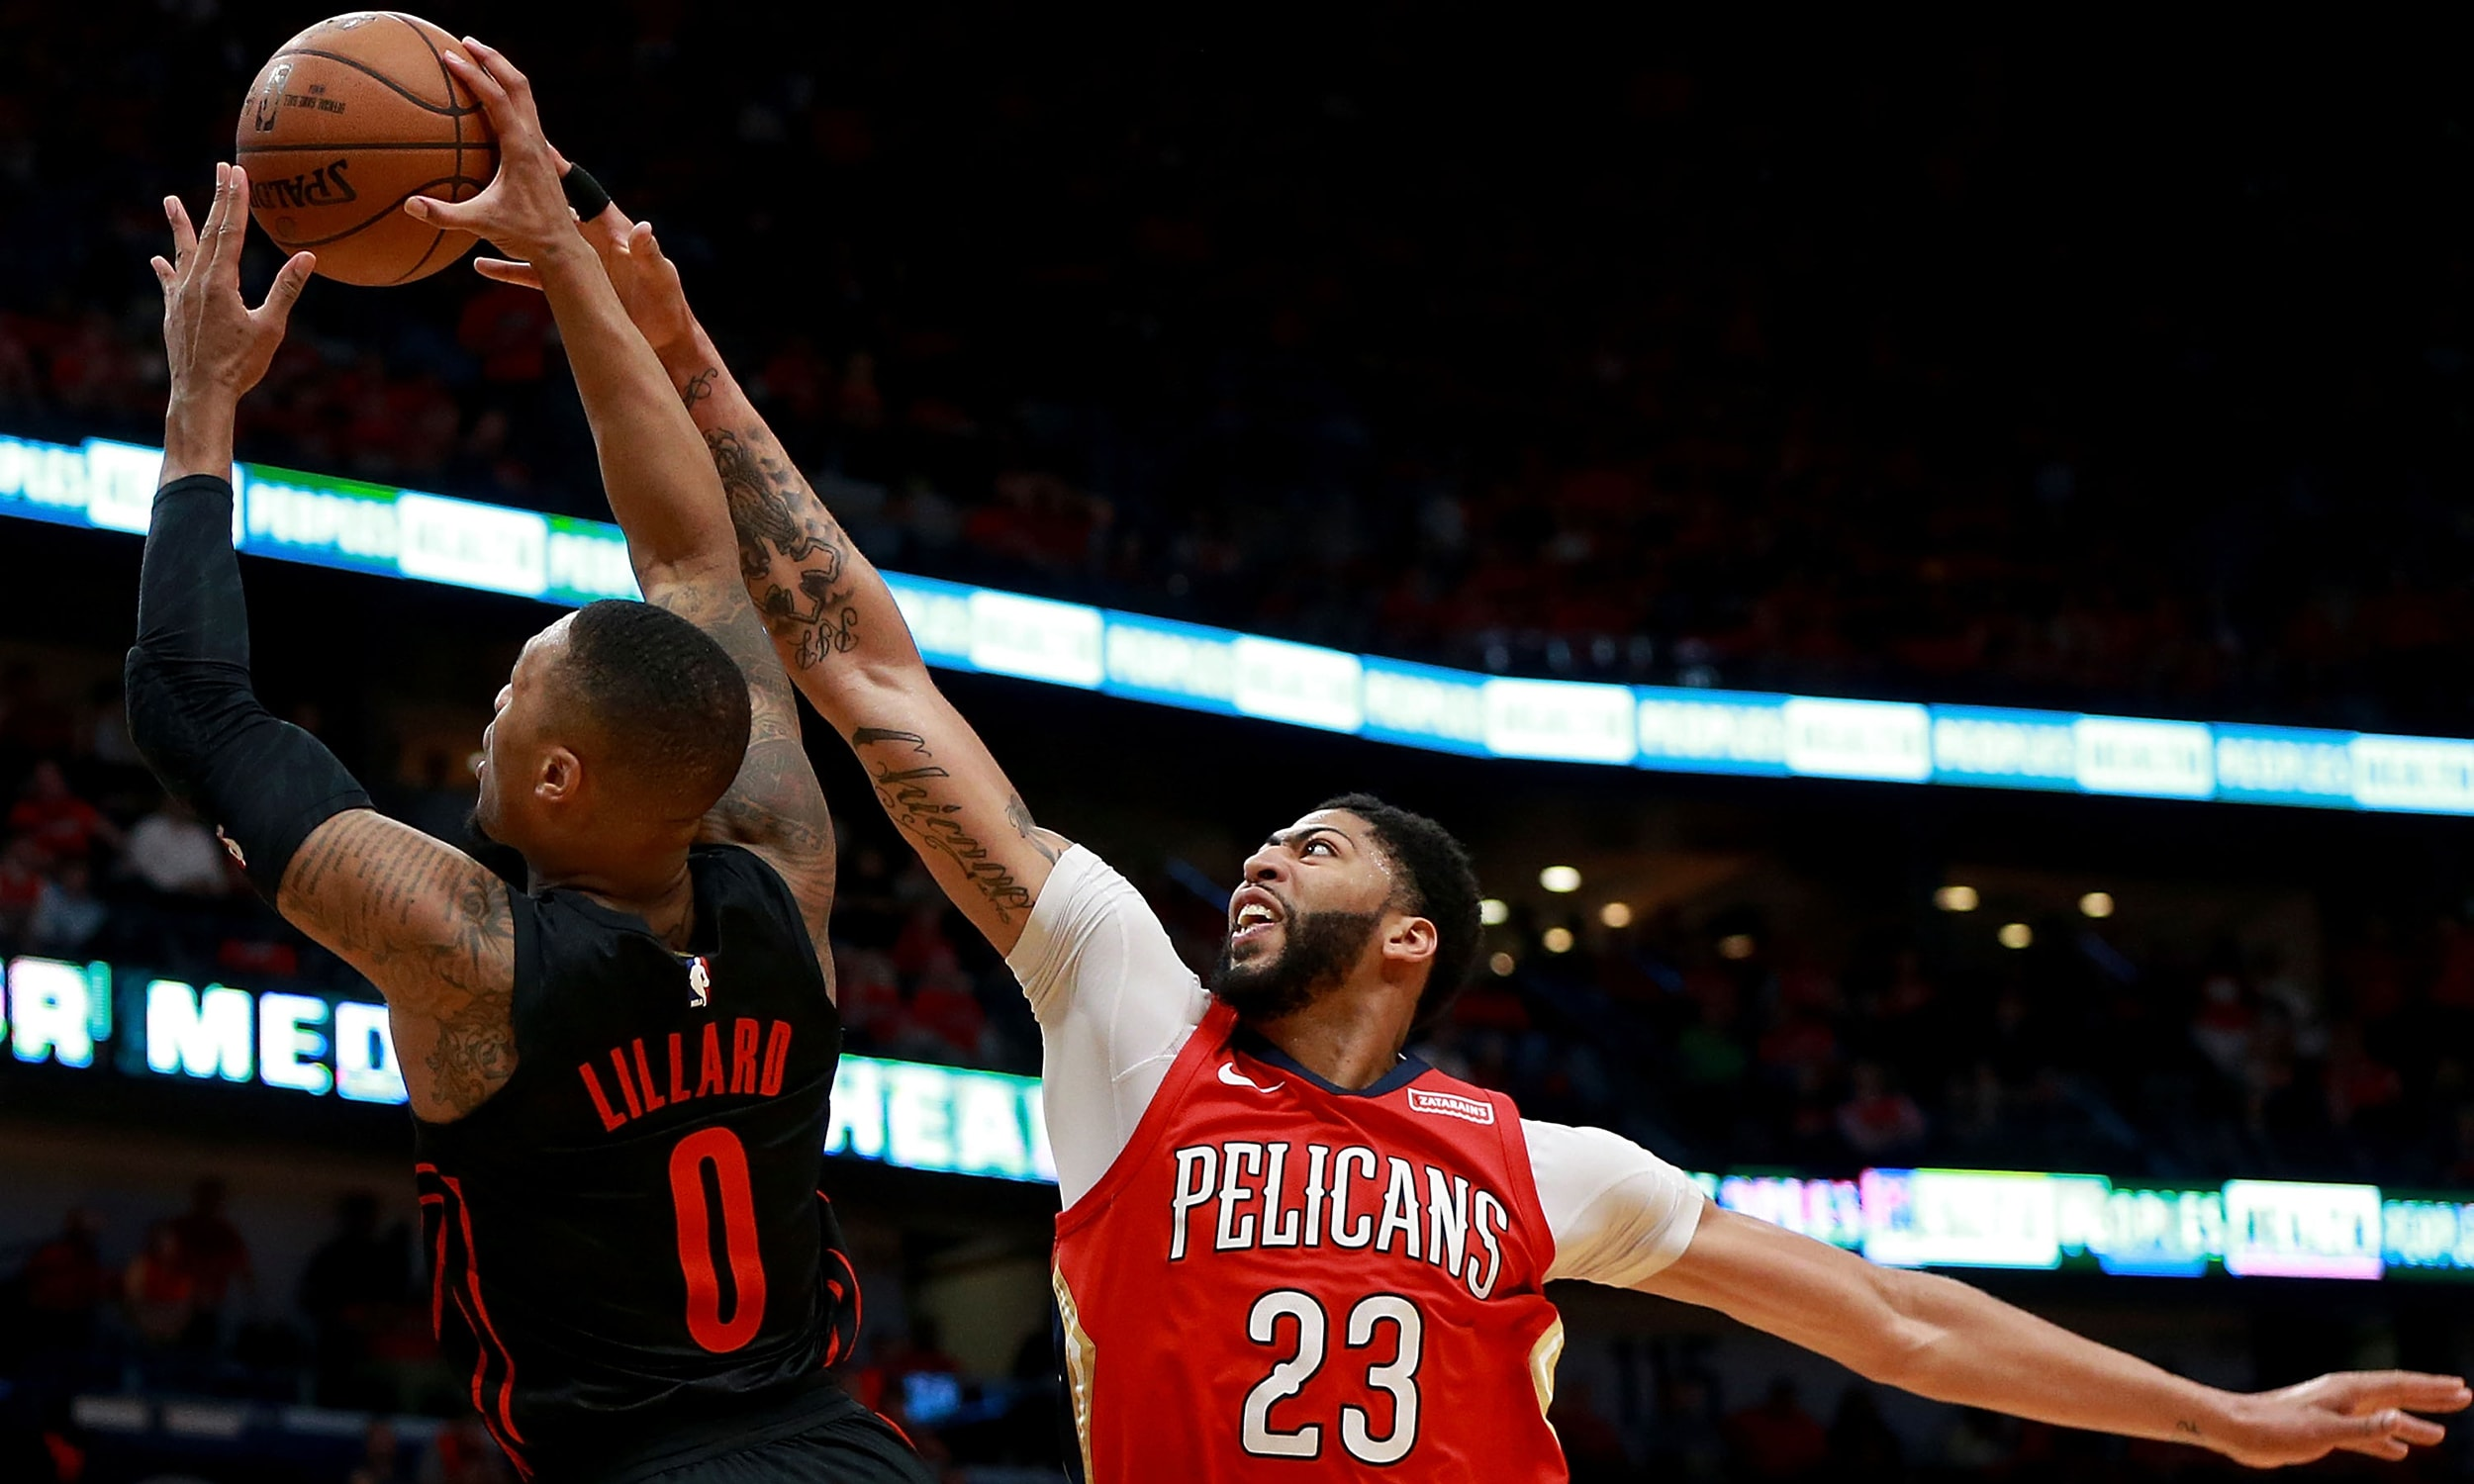 Pelicans Push Series Lead to 3-0